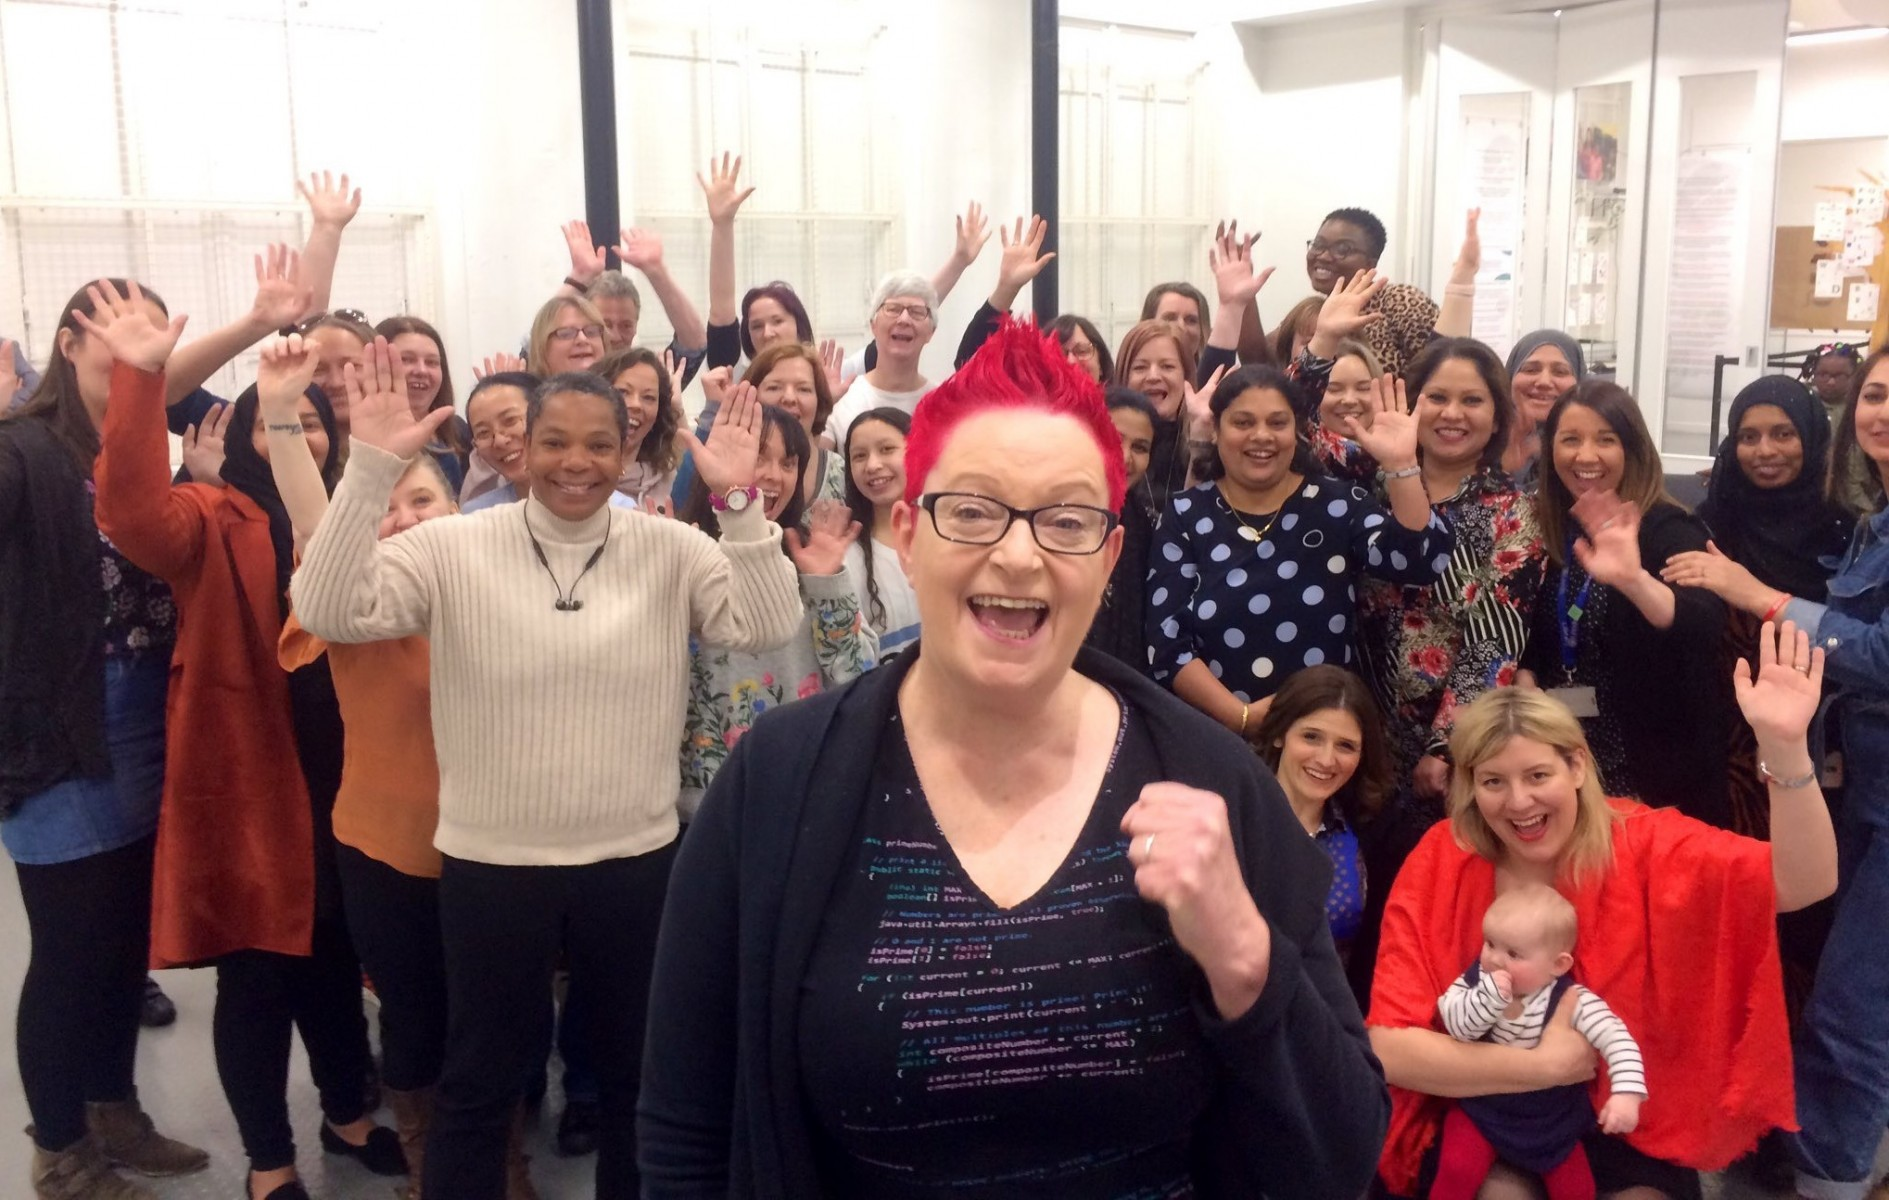 Leeds #techmums pictured with #techmums founder Dr Sue Black (front centre).